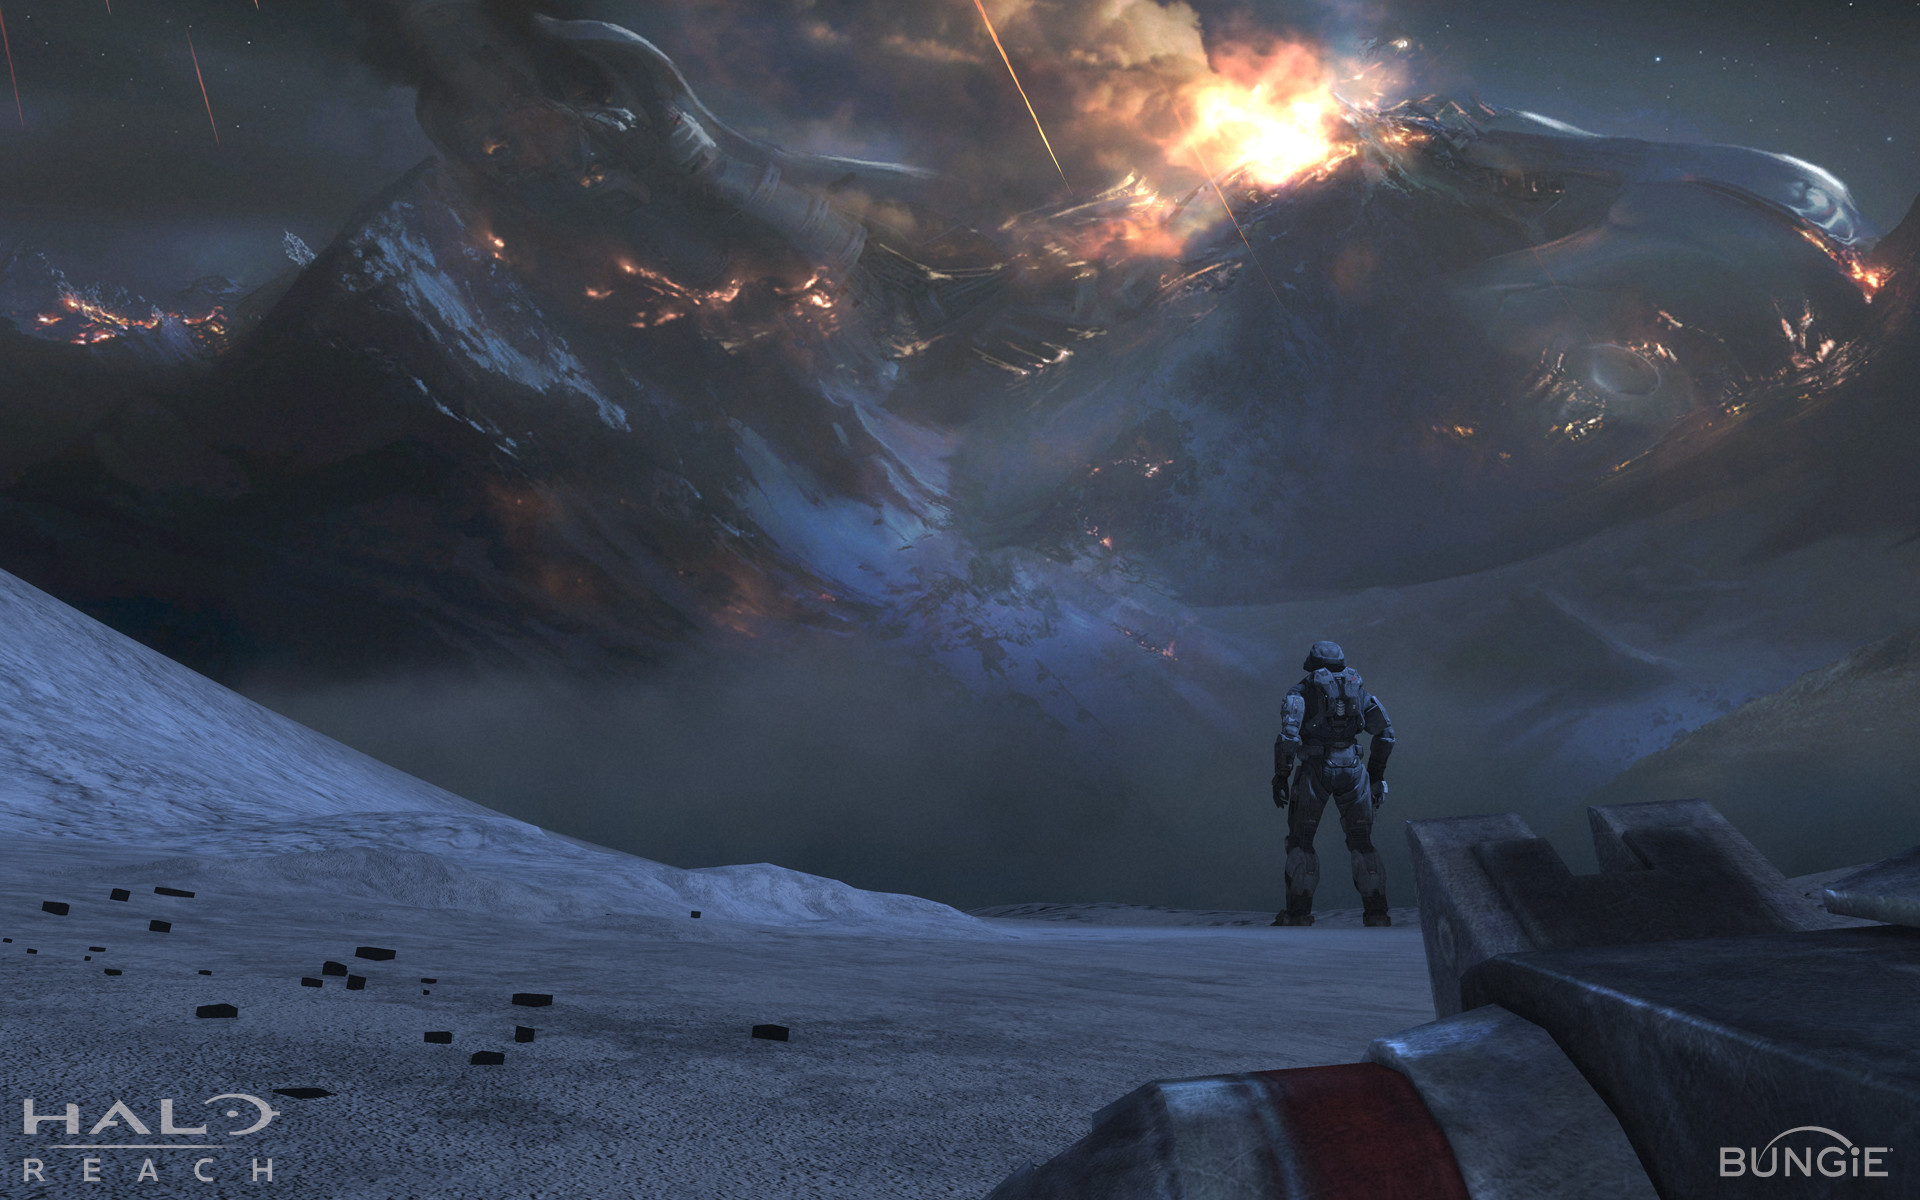 1920x1200 halo-reach-backgrounds-1920×1200-photo-WTG3052224